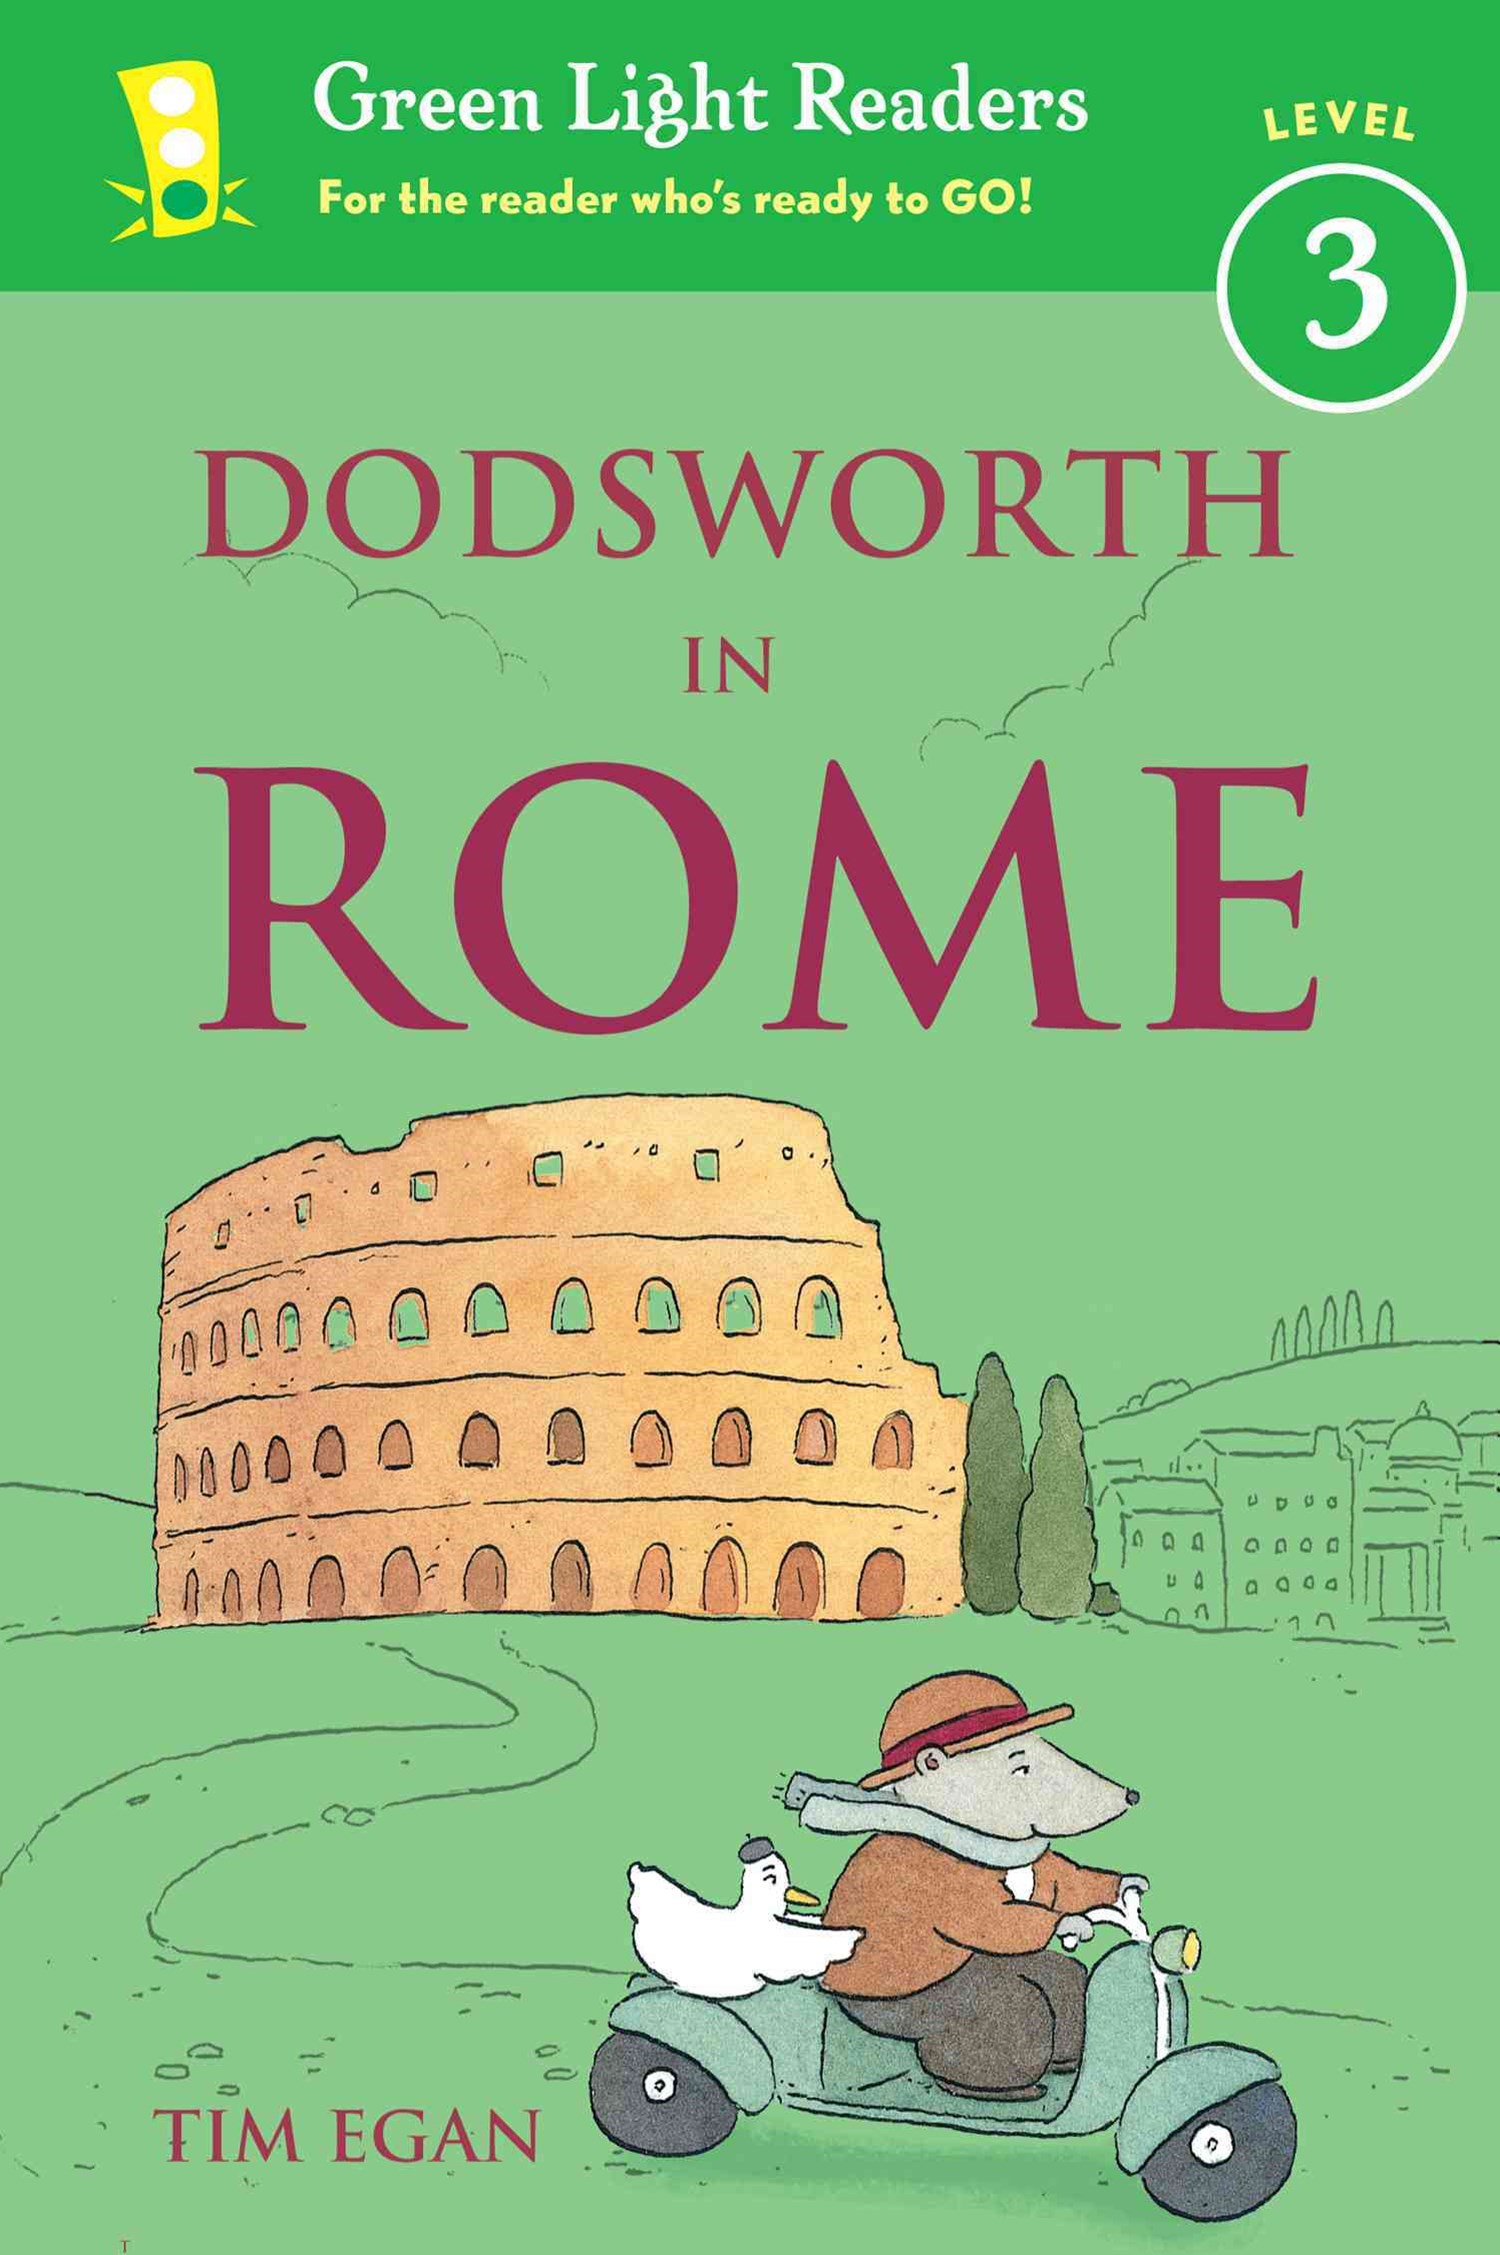 Dodsworth in Rome: Green Light Readers Level 3